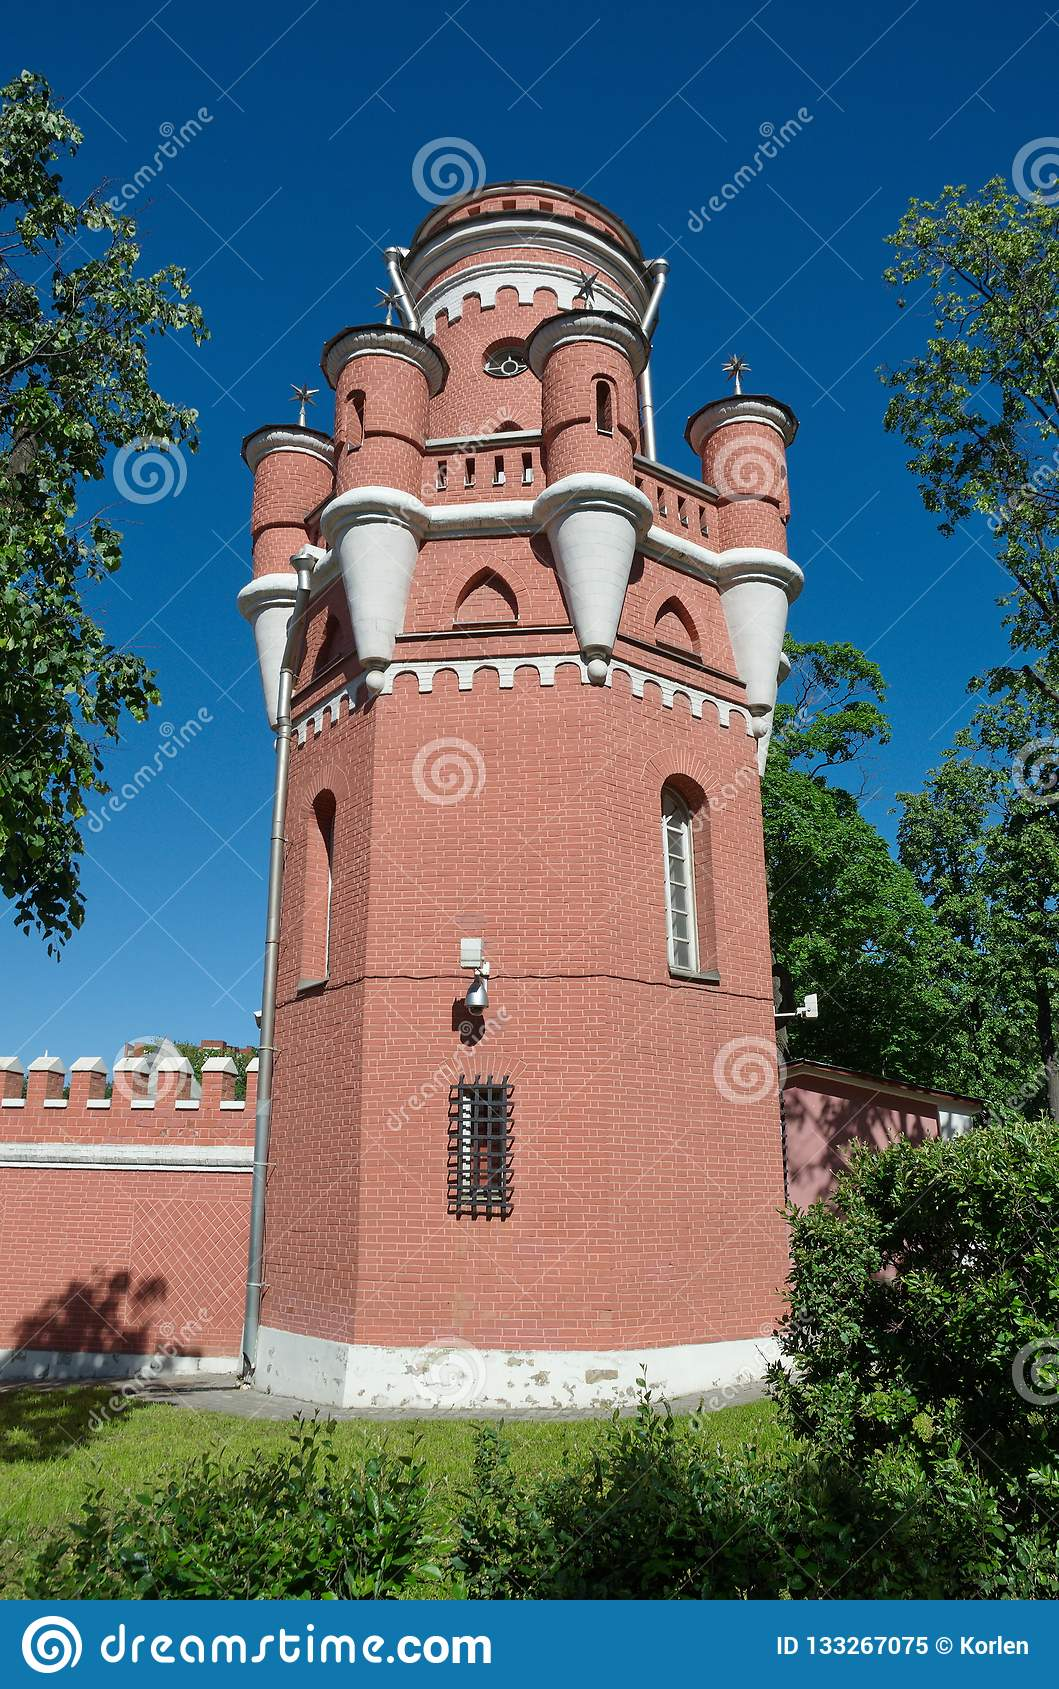 The tower of Petrovsky travel Palace in Moscow on the Leningradsky prospect, Russia